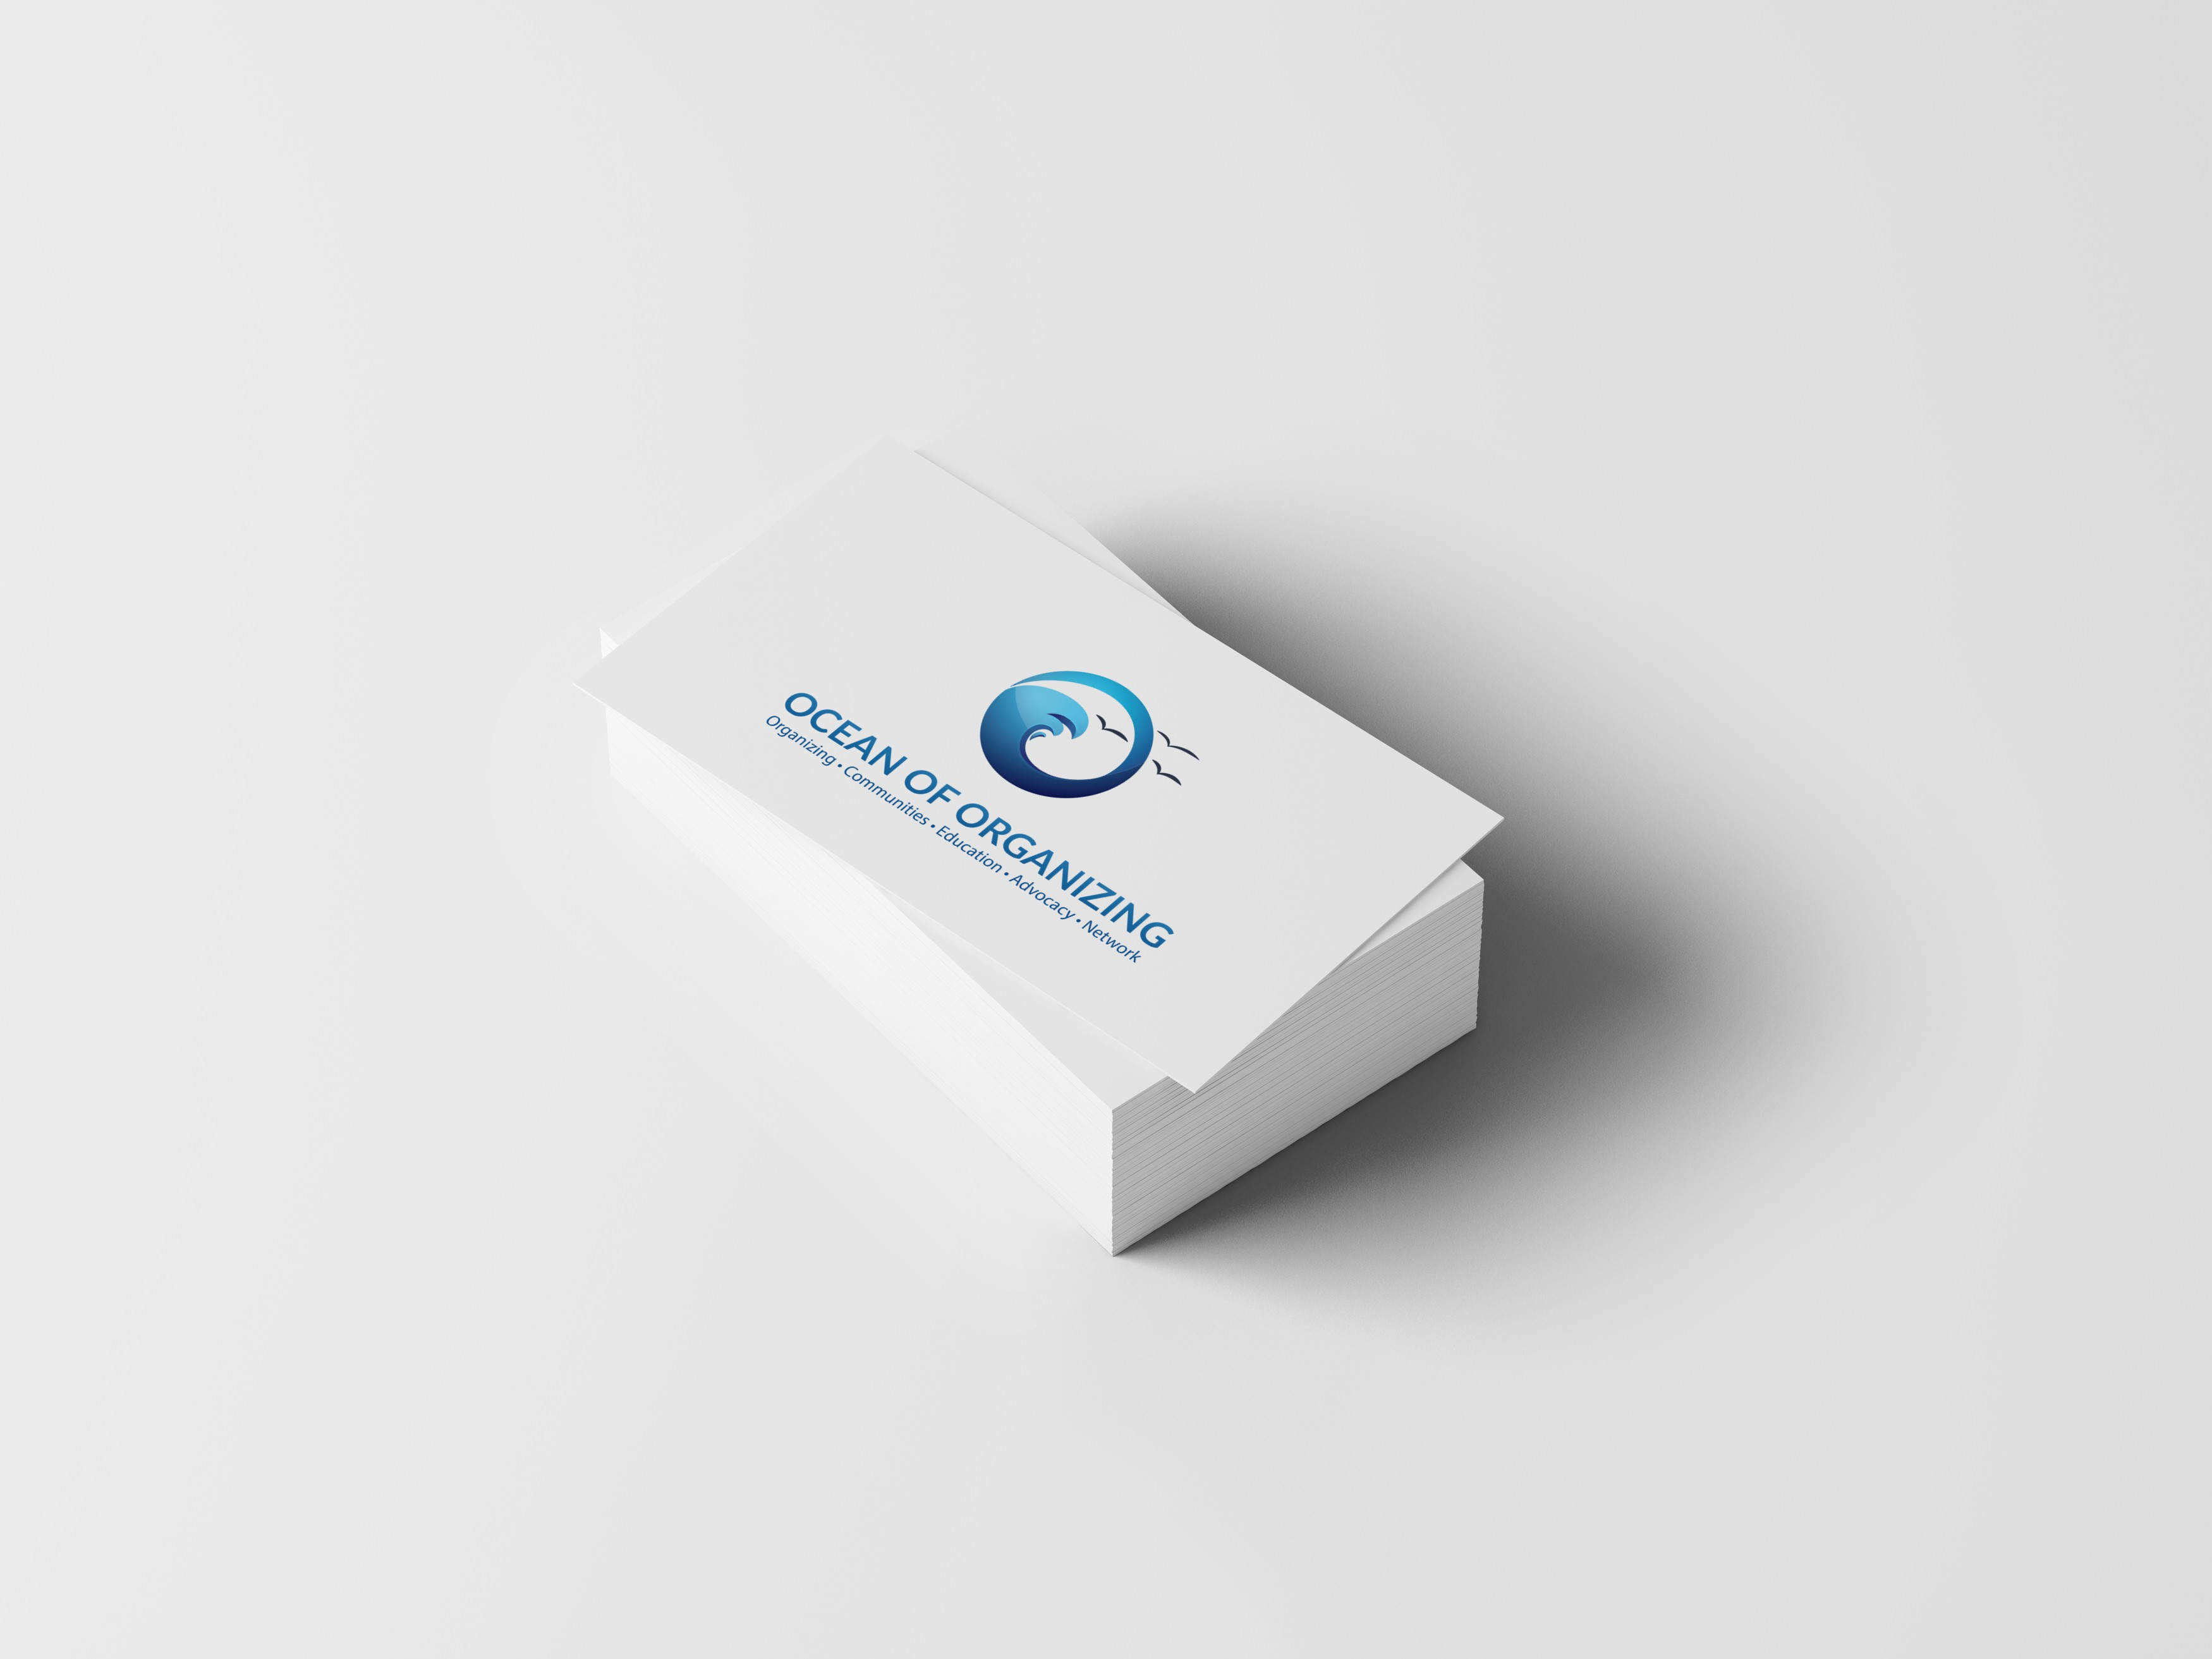 Create bold clean wave logo for Groundswell Action & Consulting